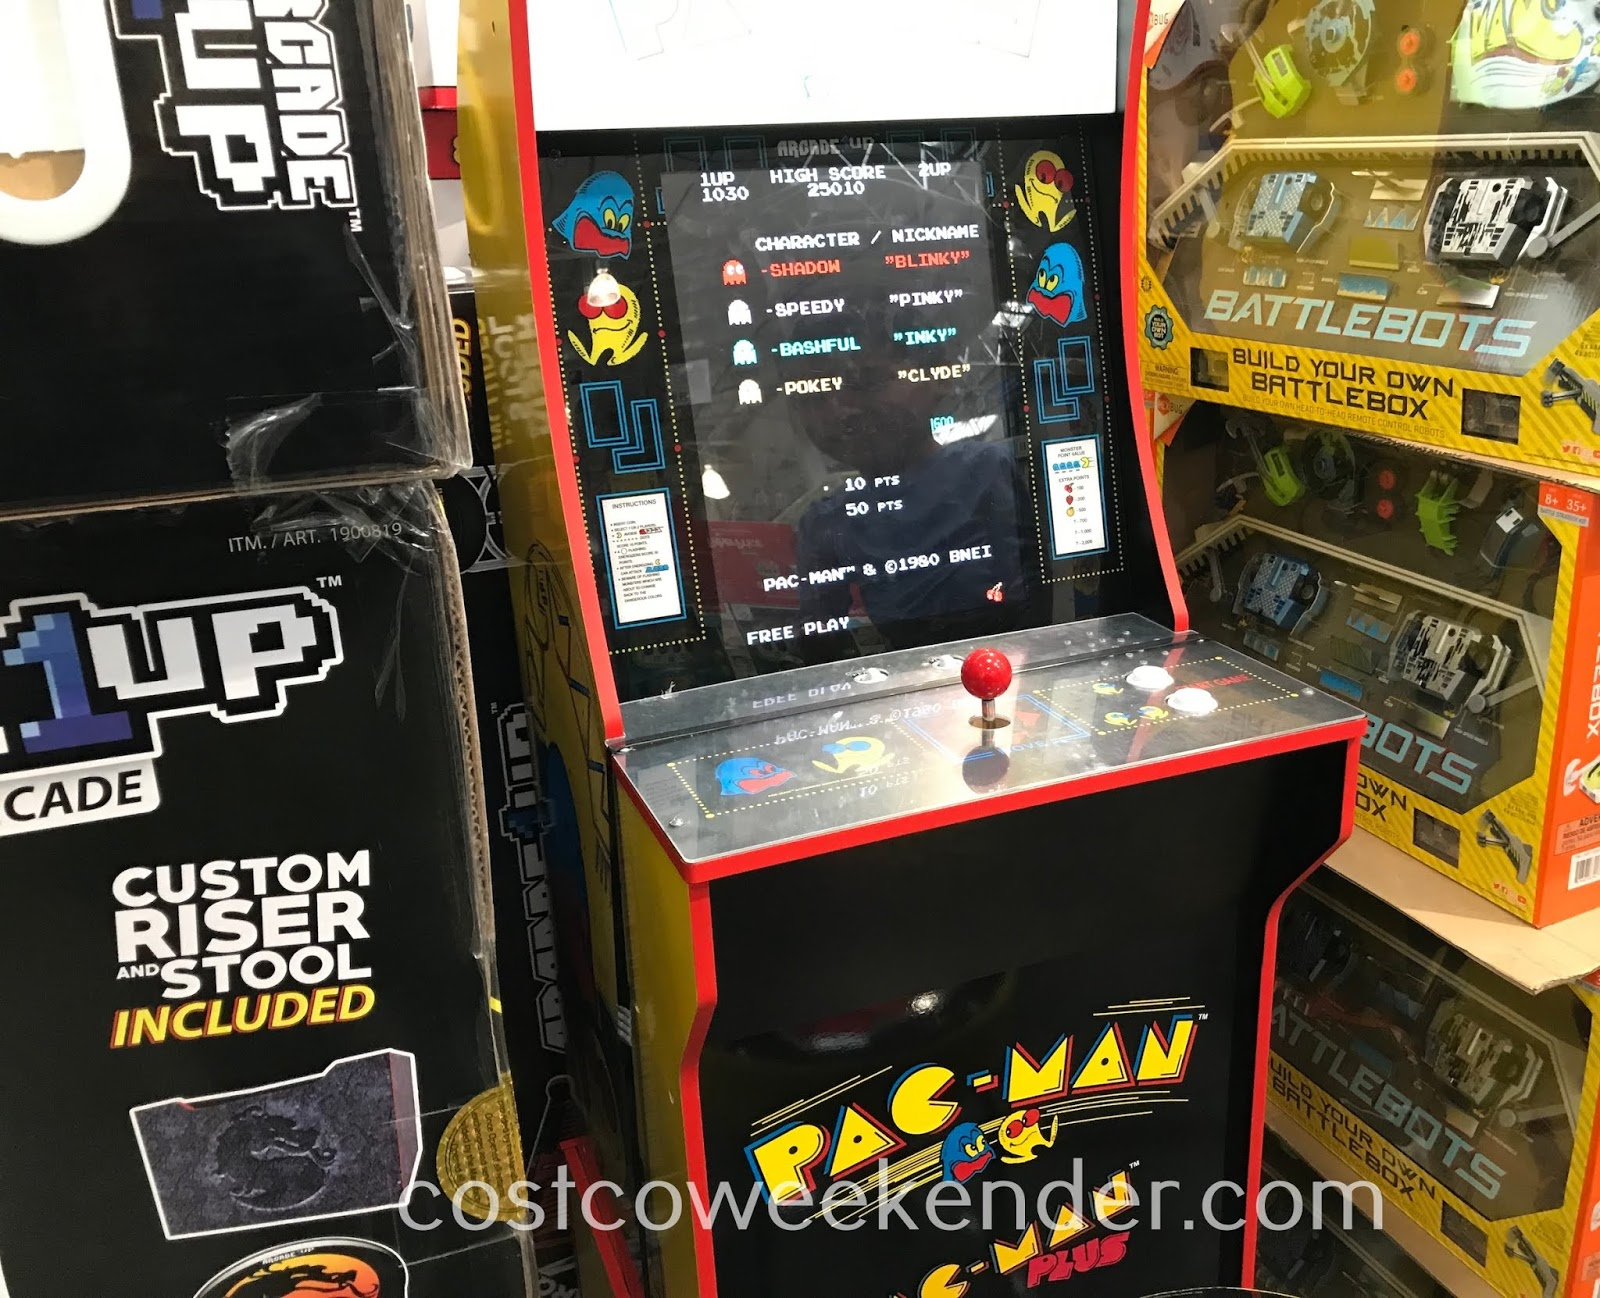 Have your very own home arcade with Arcade1Up Mini Arcade Machines